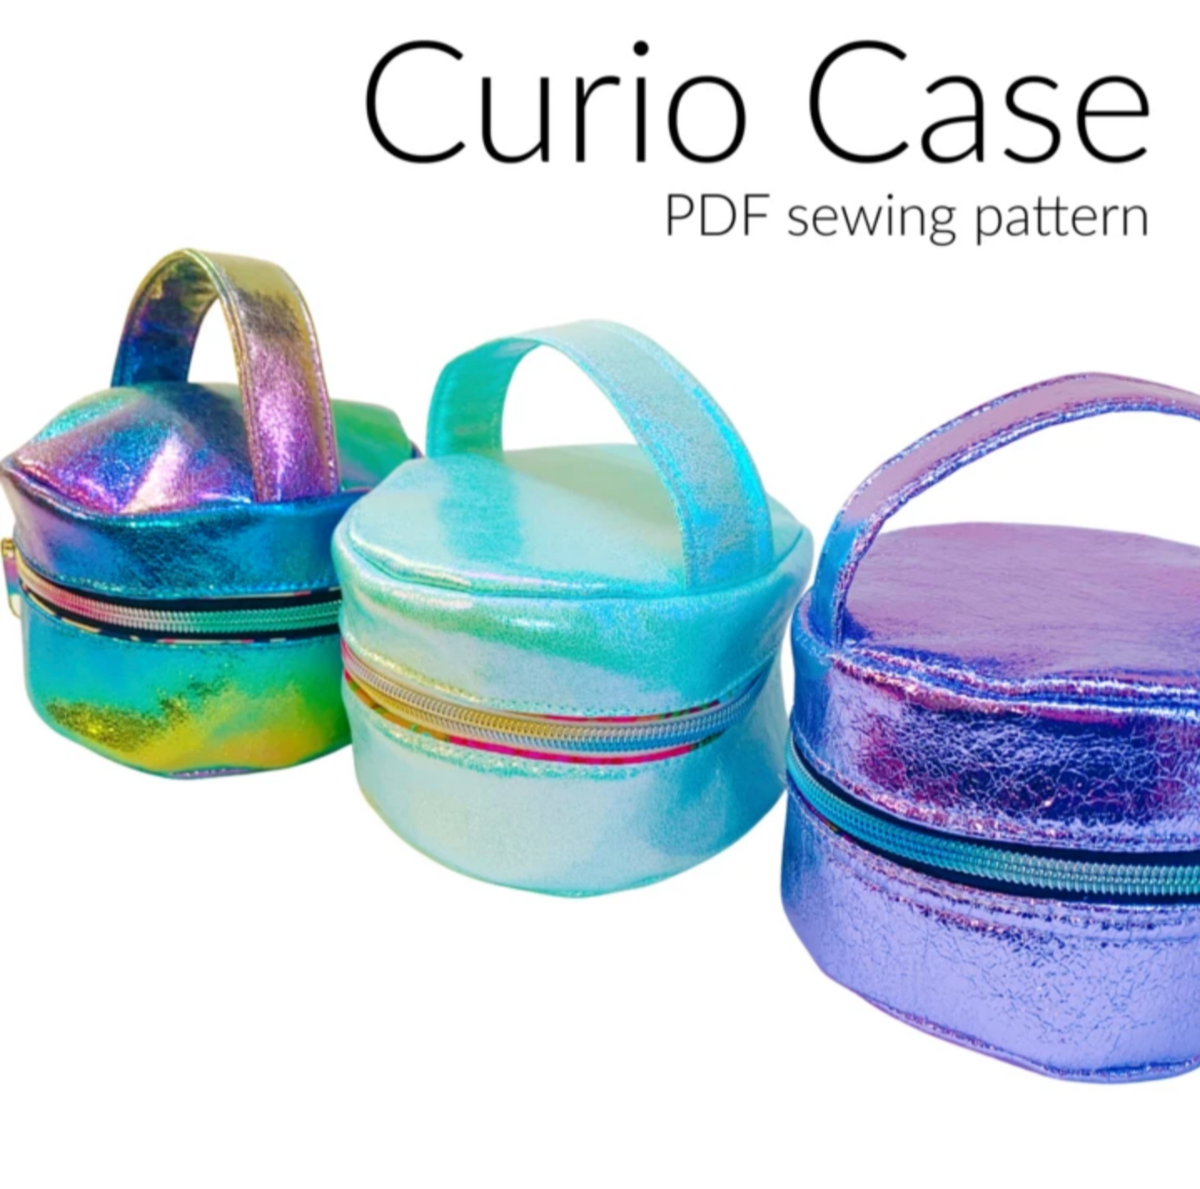 Curio Case PDF Sewing Pattern